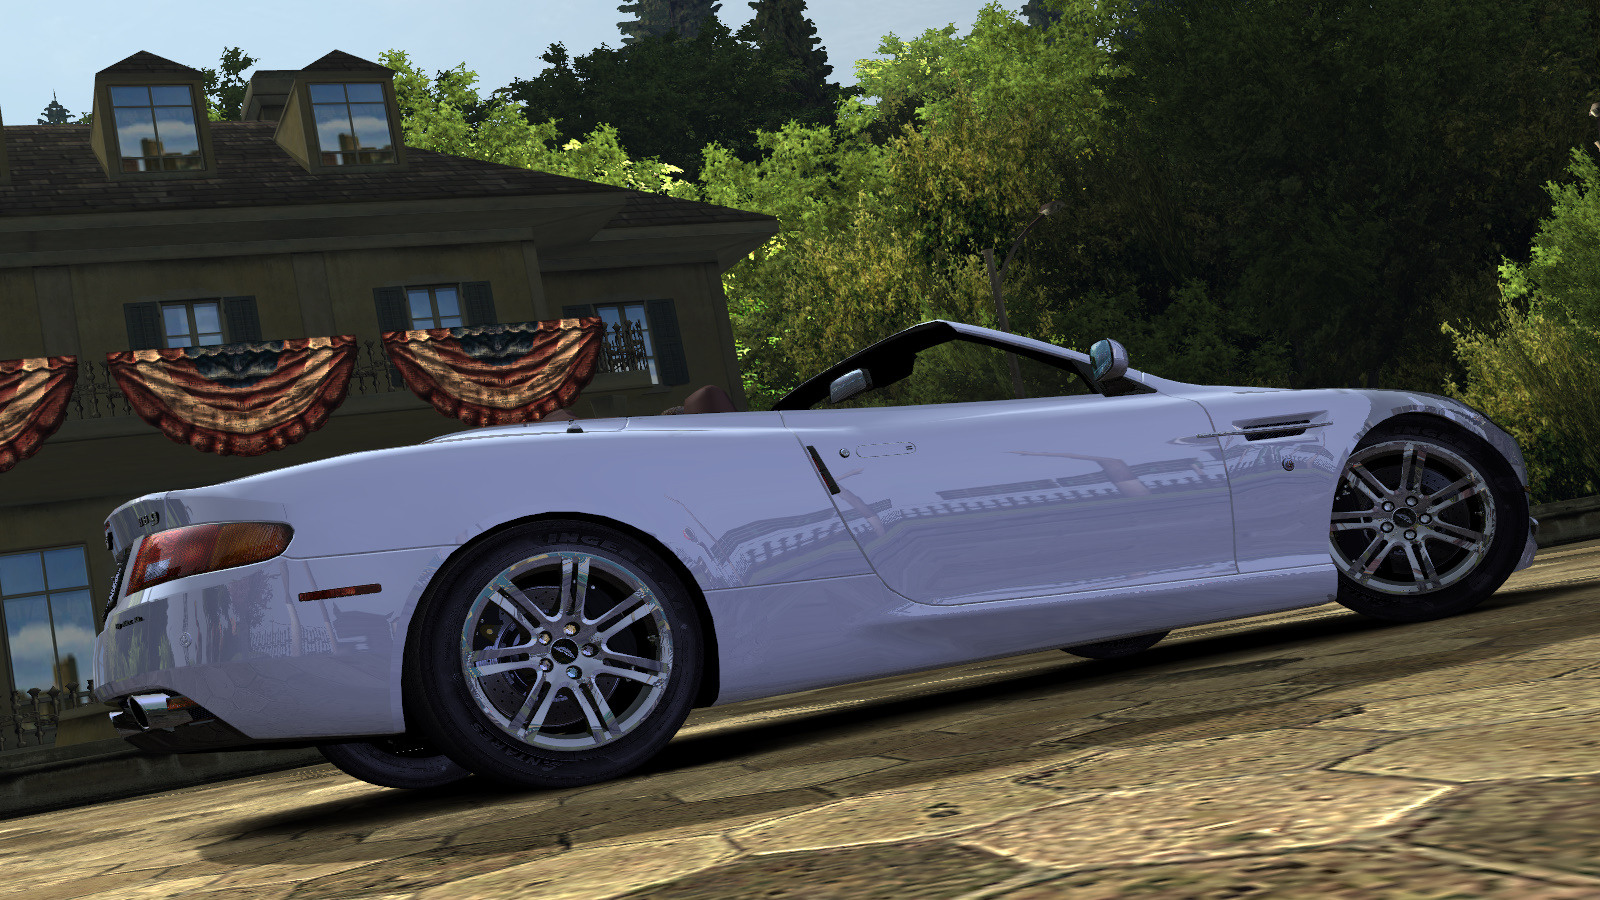 Aston Martin DB9 Volante by Alex.Ka. - Need for Speed: Most Wanted (2005) Автомобиль